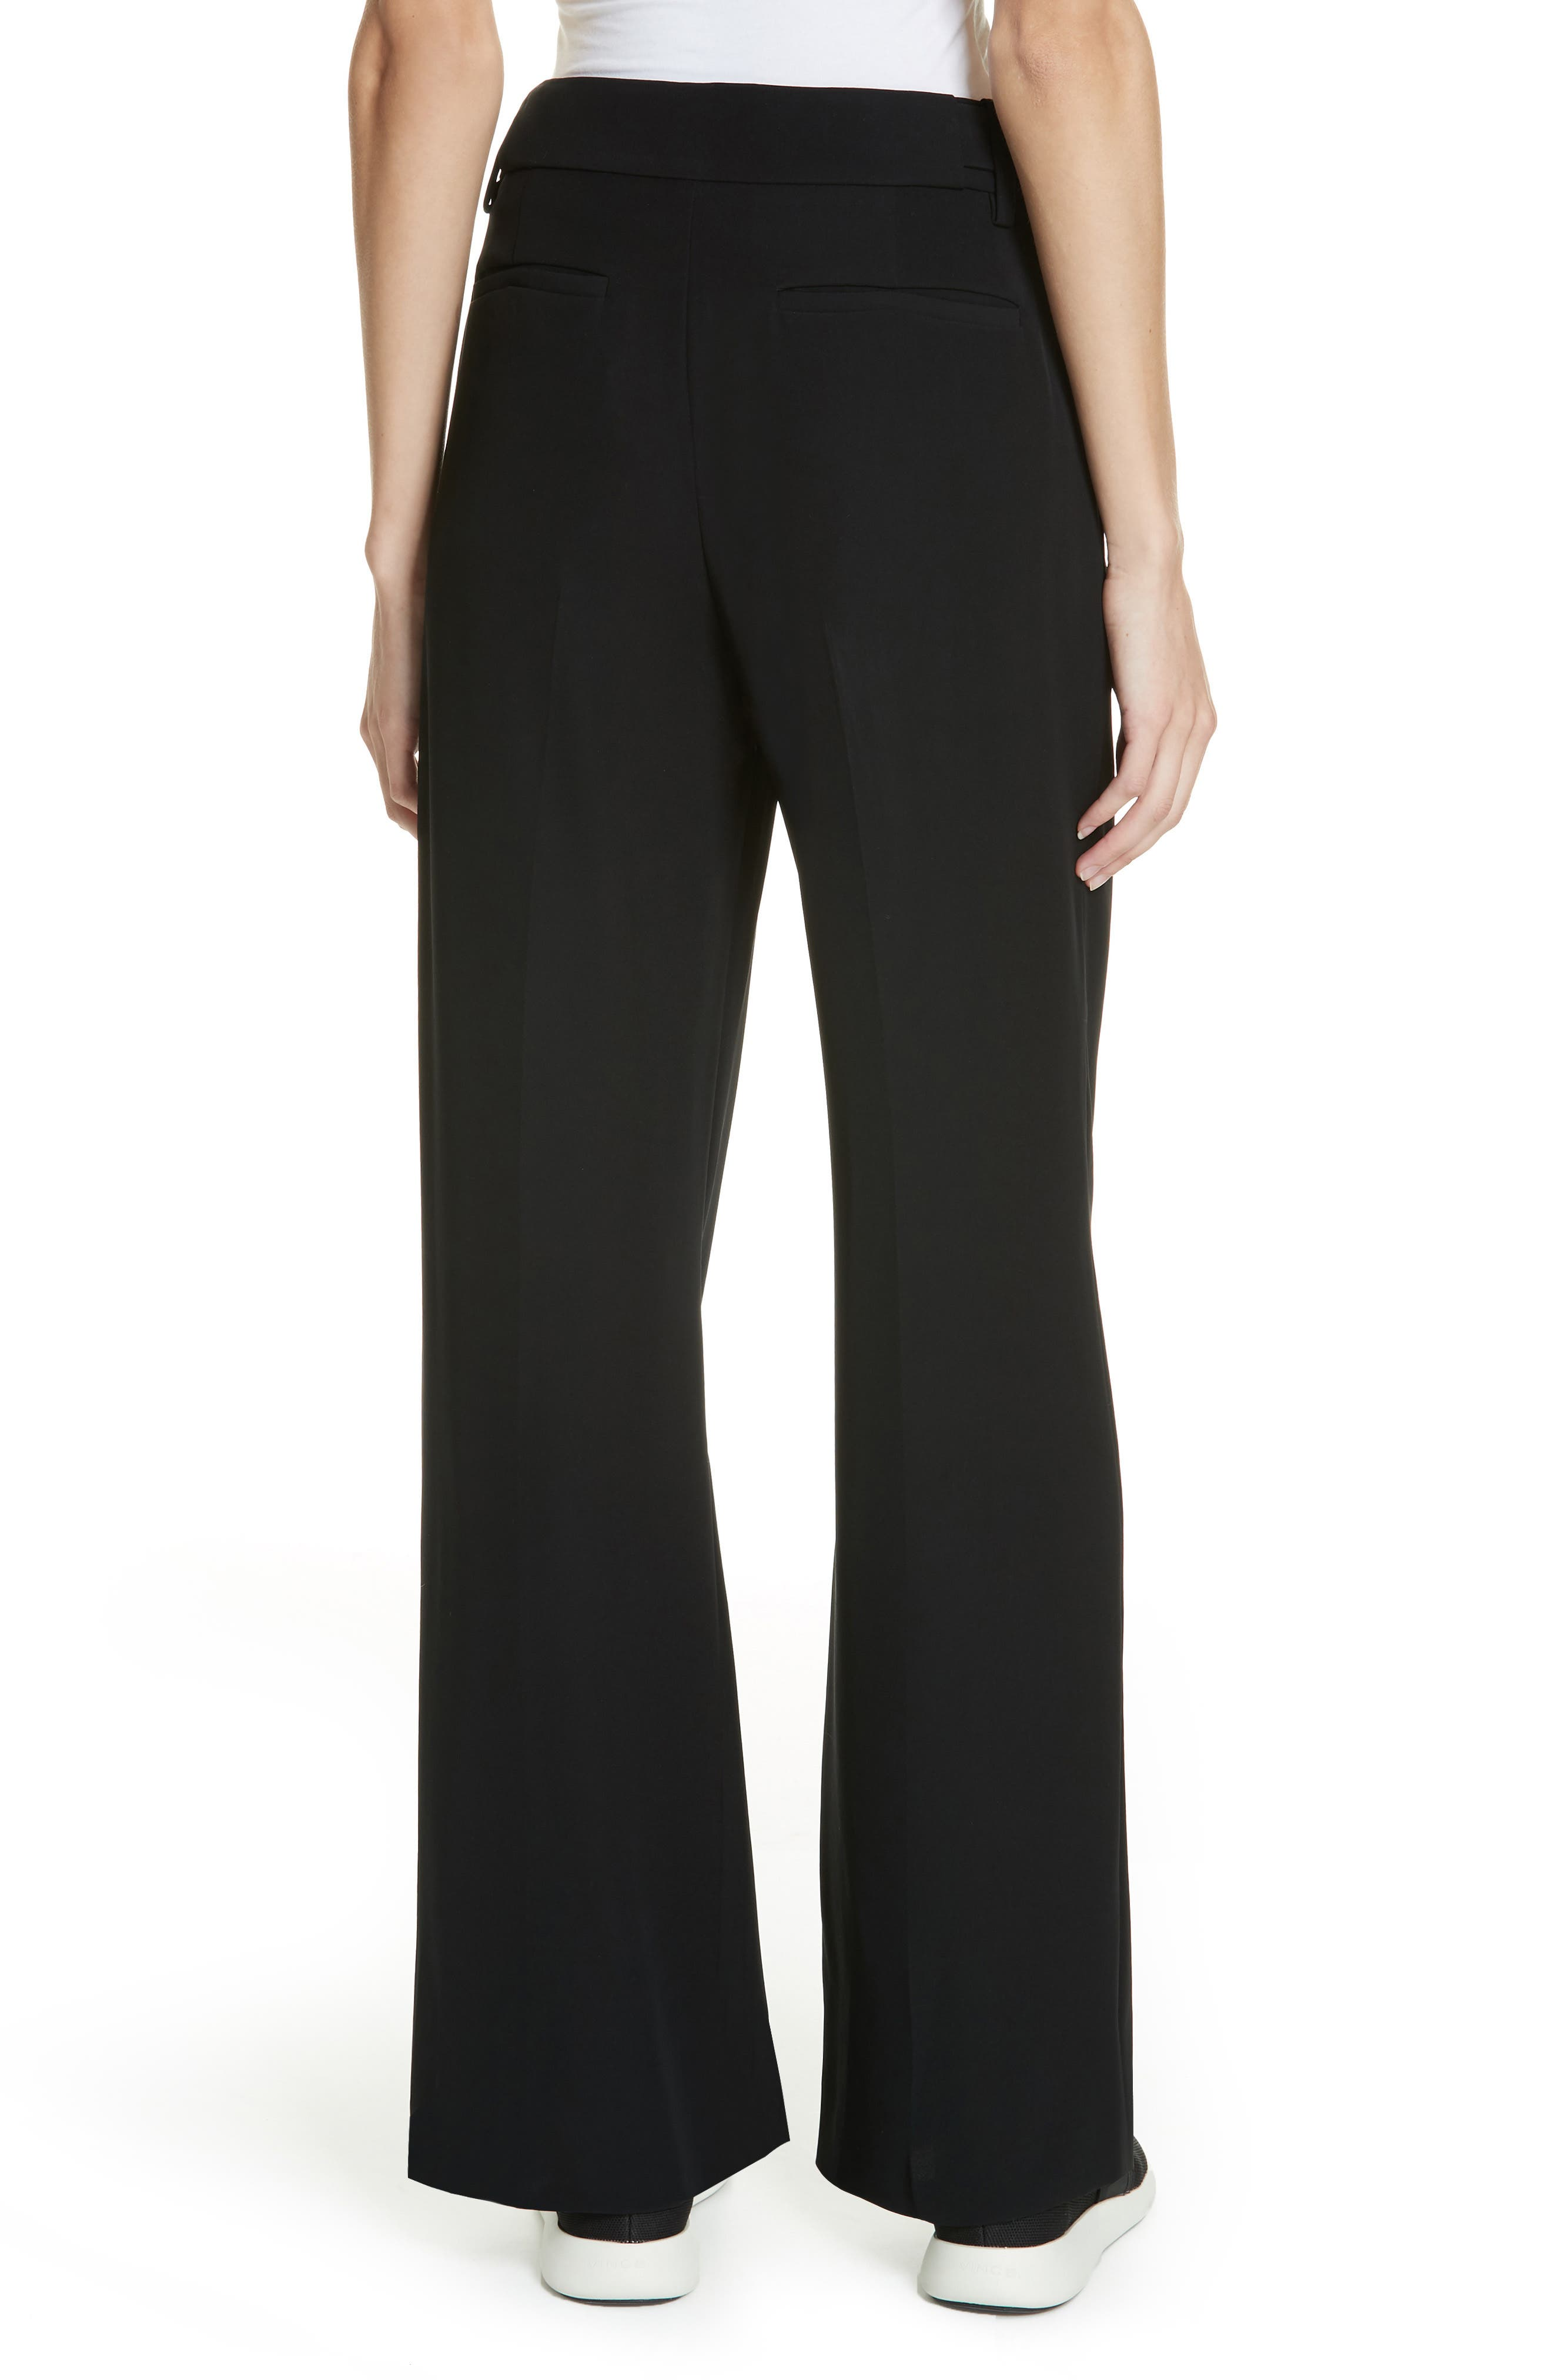 VINCE, Relaxed Wide Leg Trousers, Alternate thumbnail 2, color, BLACK